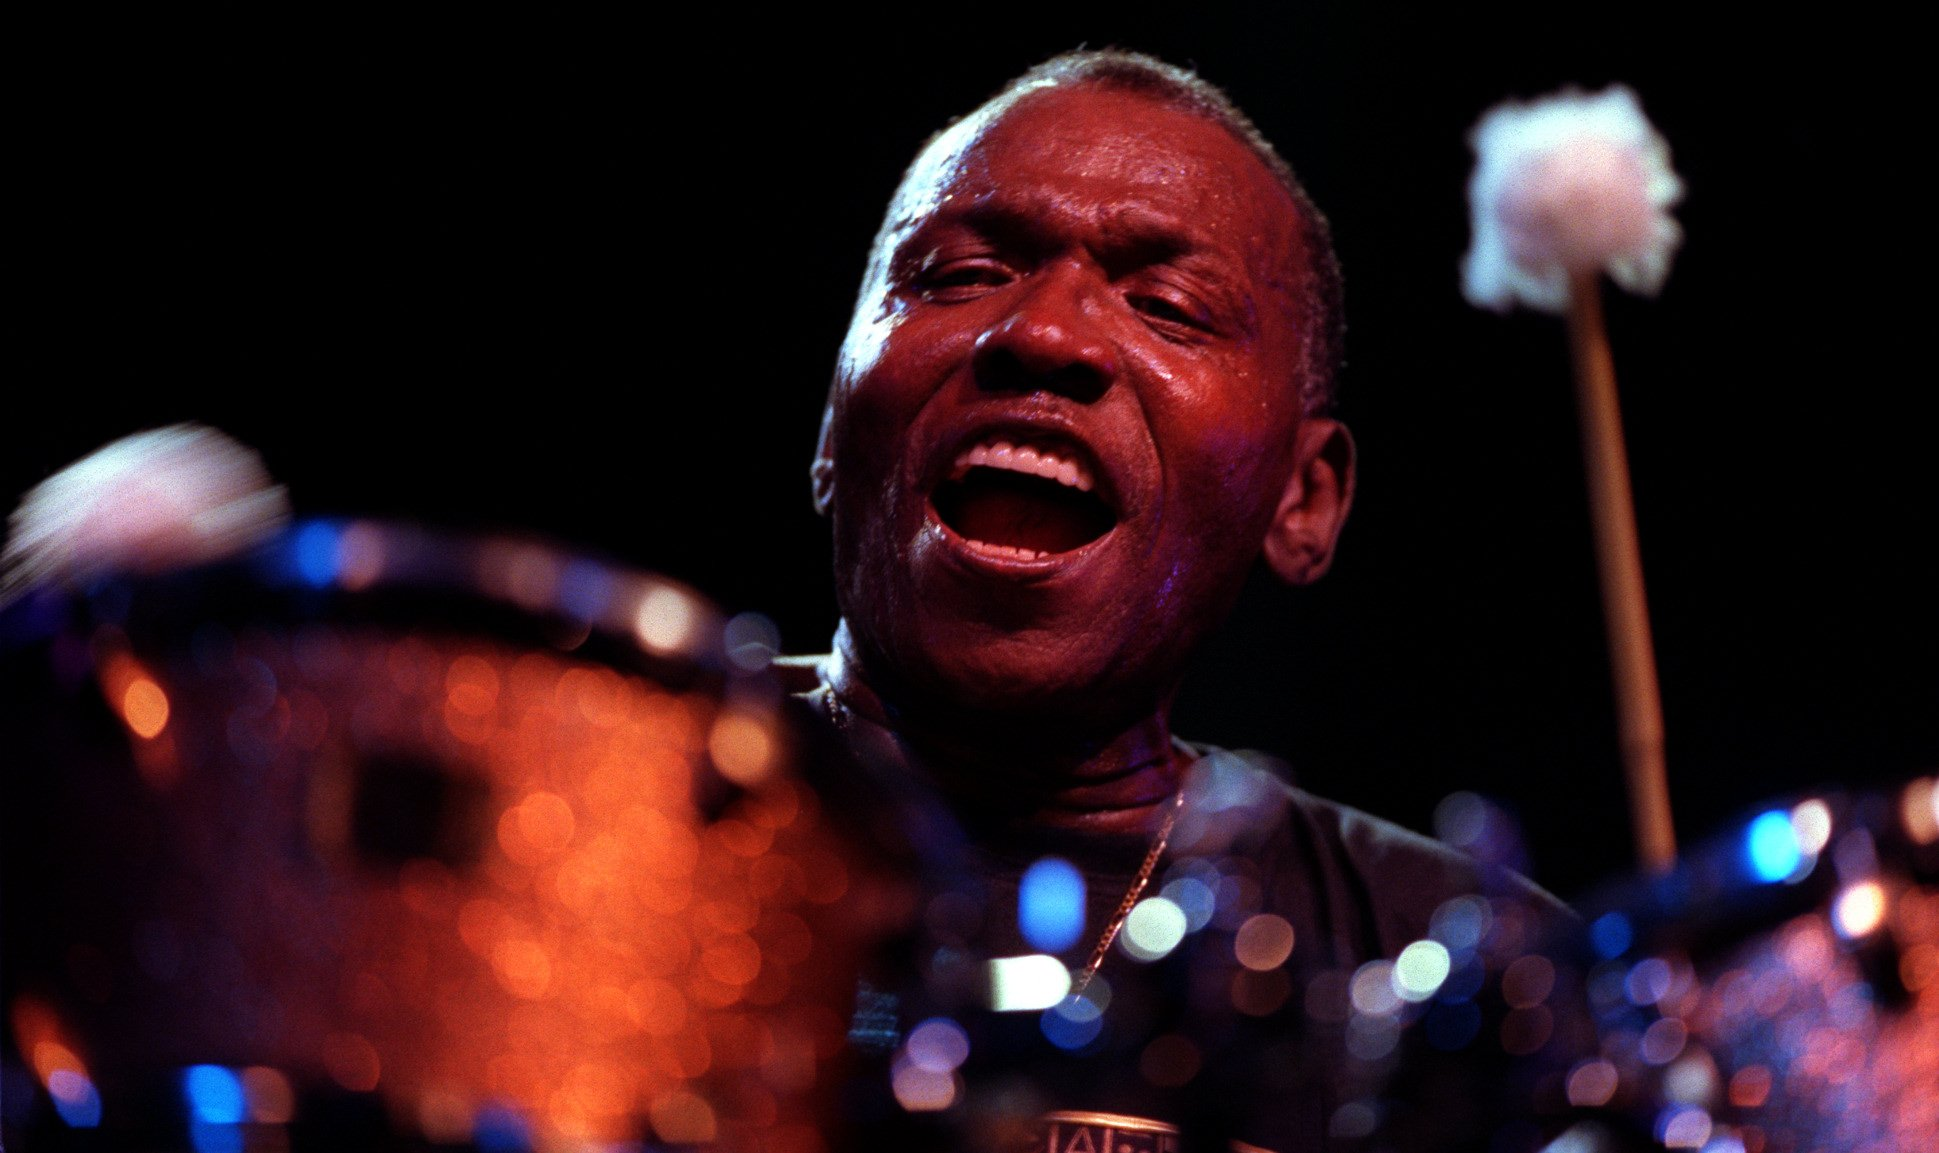 Elvin Jones at the Detroit Jazz Festival, 1999. Photo credit: Andrew Johnston/Detroit Free Press